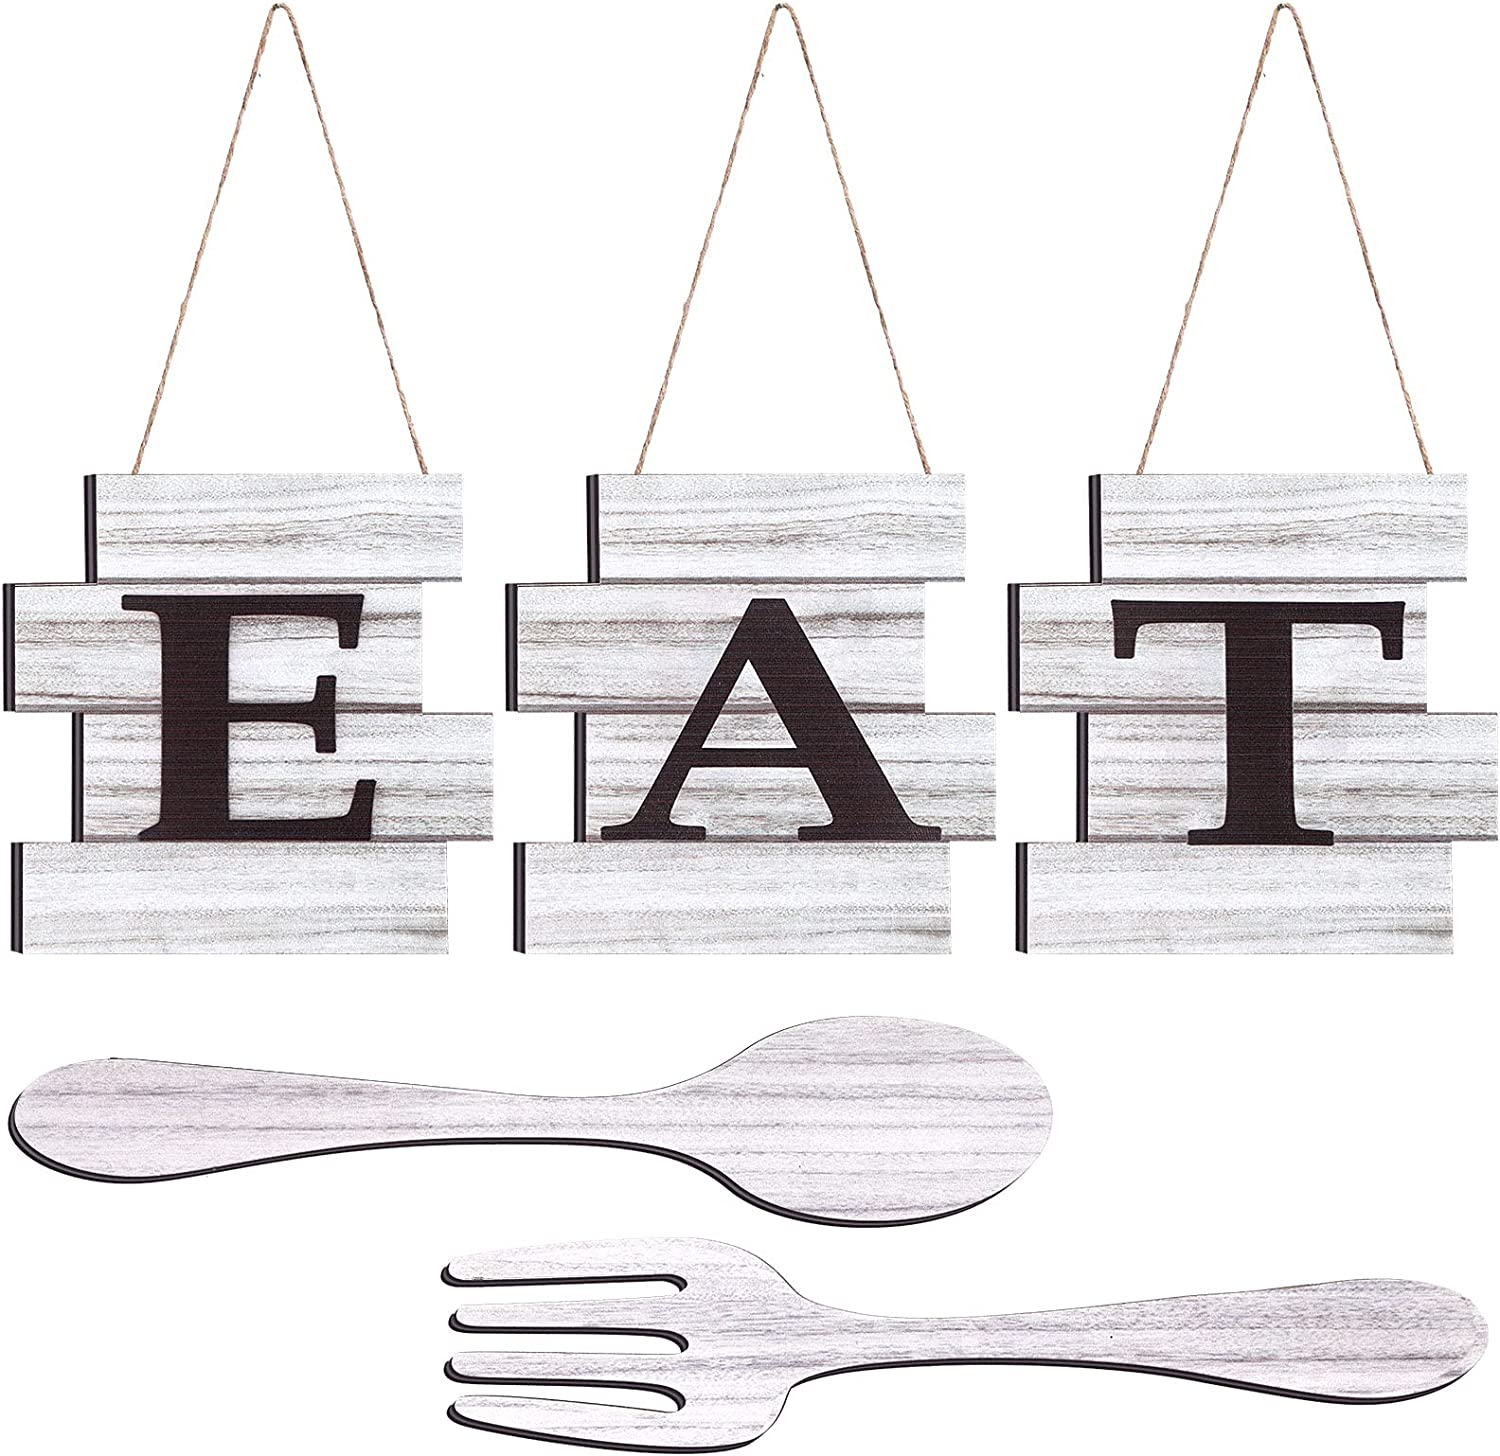 Yookeer Set of 5 Pieces Eat Sign Wall Decor, Rustic Farmhouse Spoon Fork Wooden Sign Decoration Country Wall Art Decorative Hanging Wooden Letters for Kitchen Home (Light Gray)